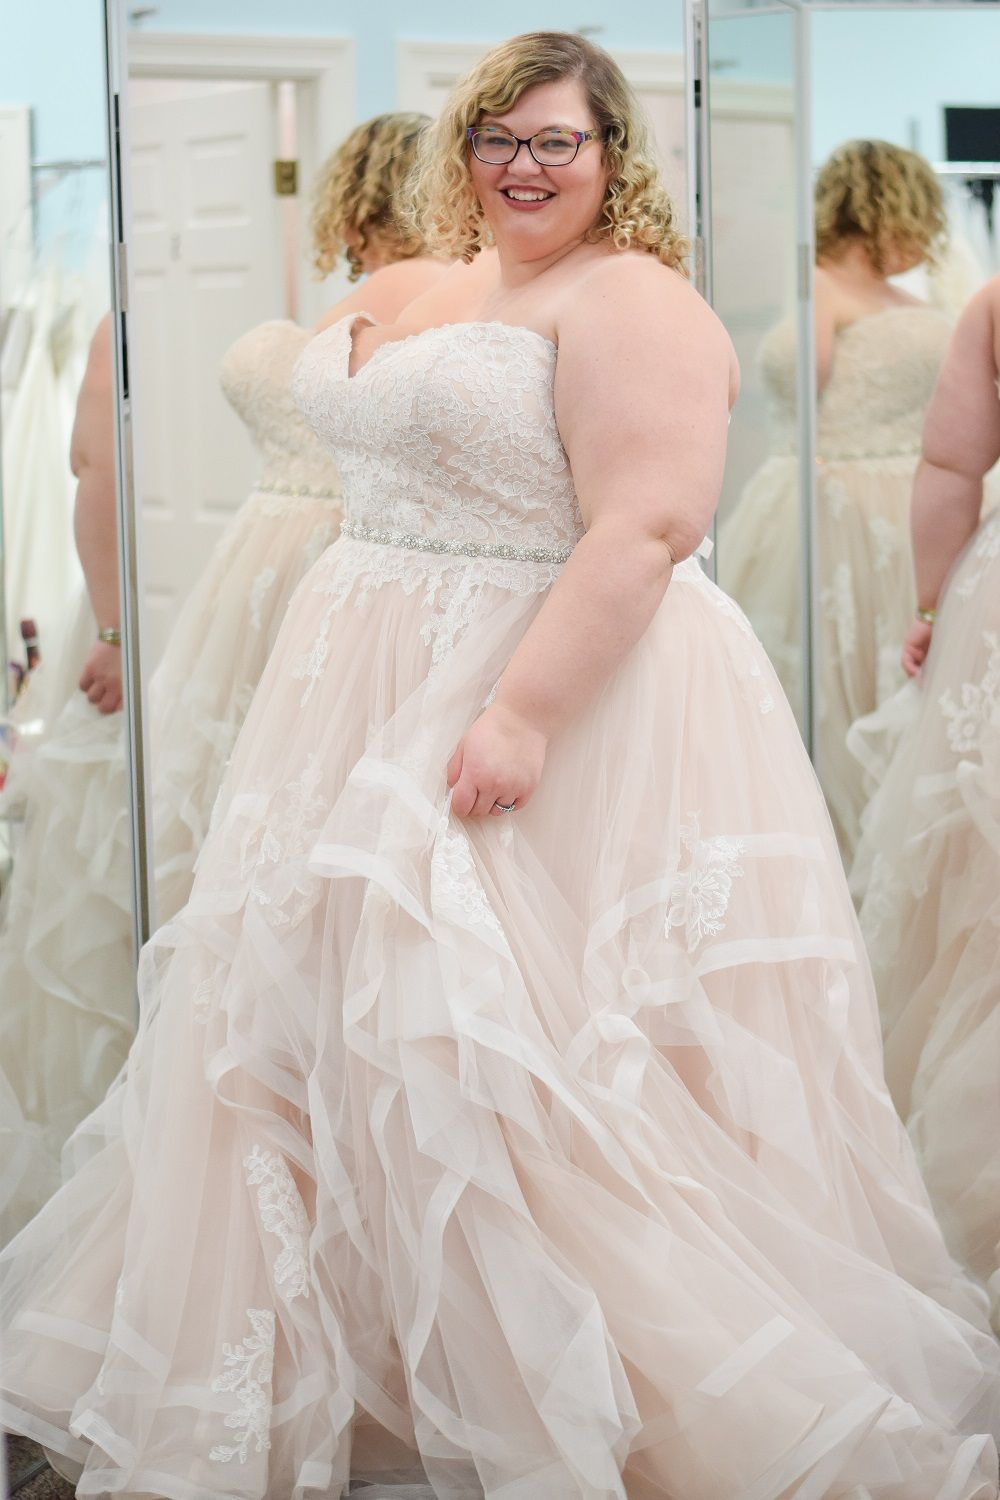 b2102373a00 An Introduction to Bombshell Bridal Boutique  Metro Detroit s plus size  bridal destination! Located in St Clair Shores and specializing in curvy  brides.